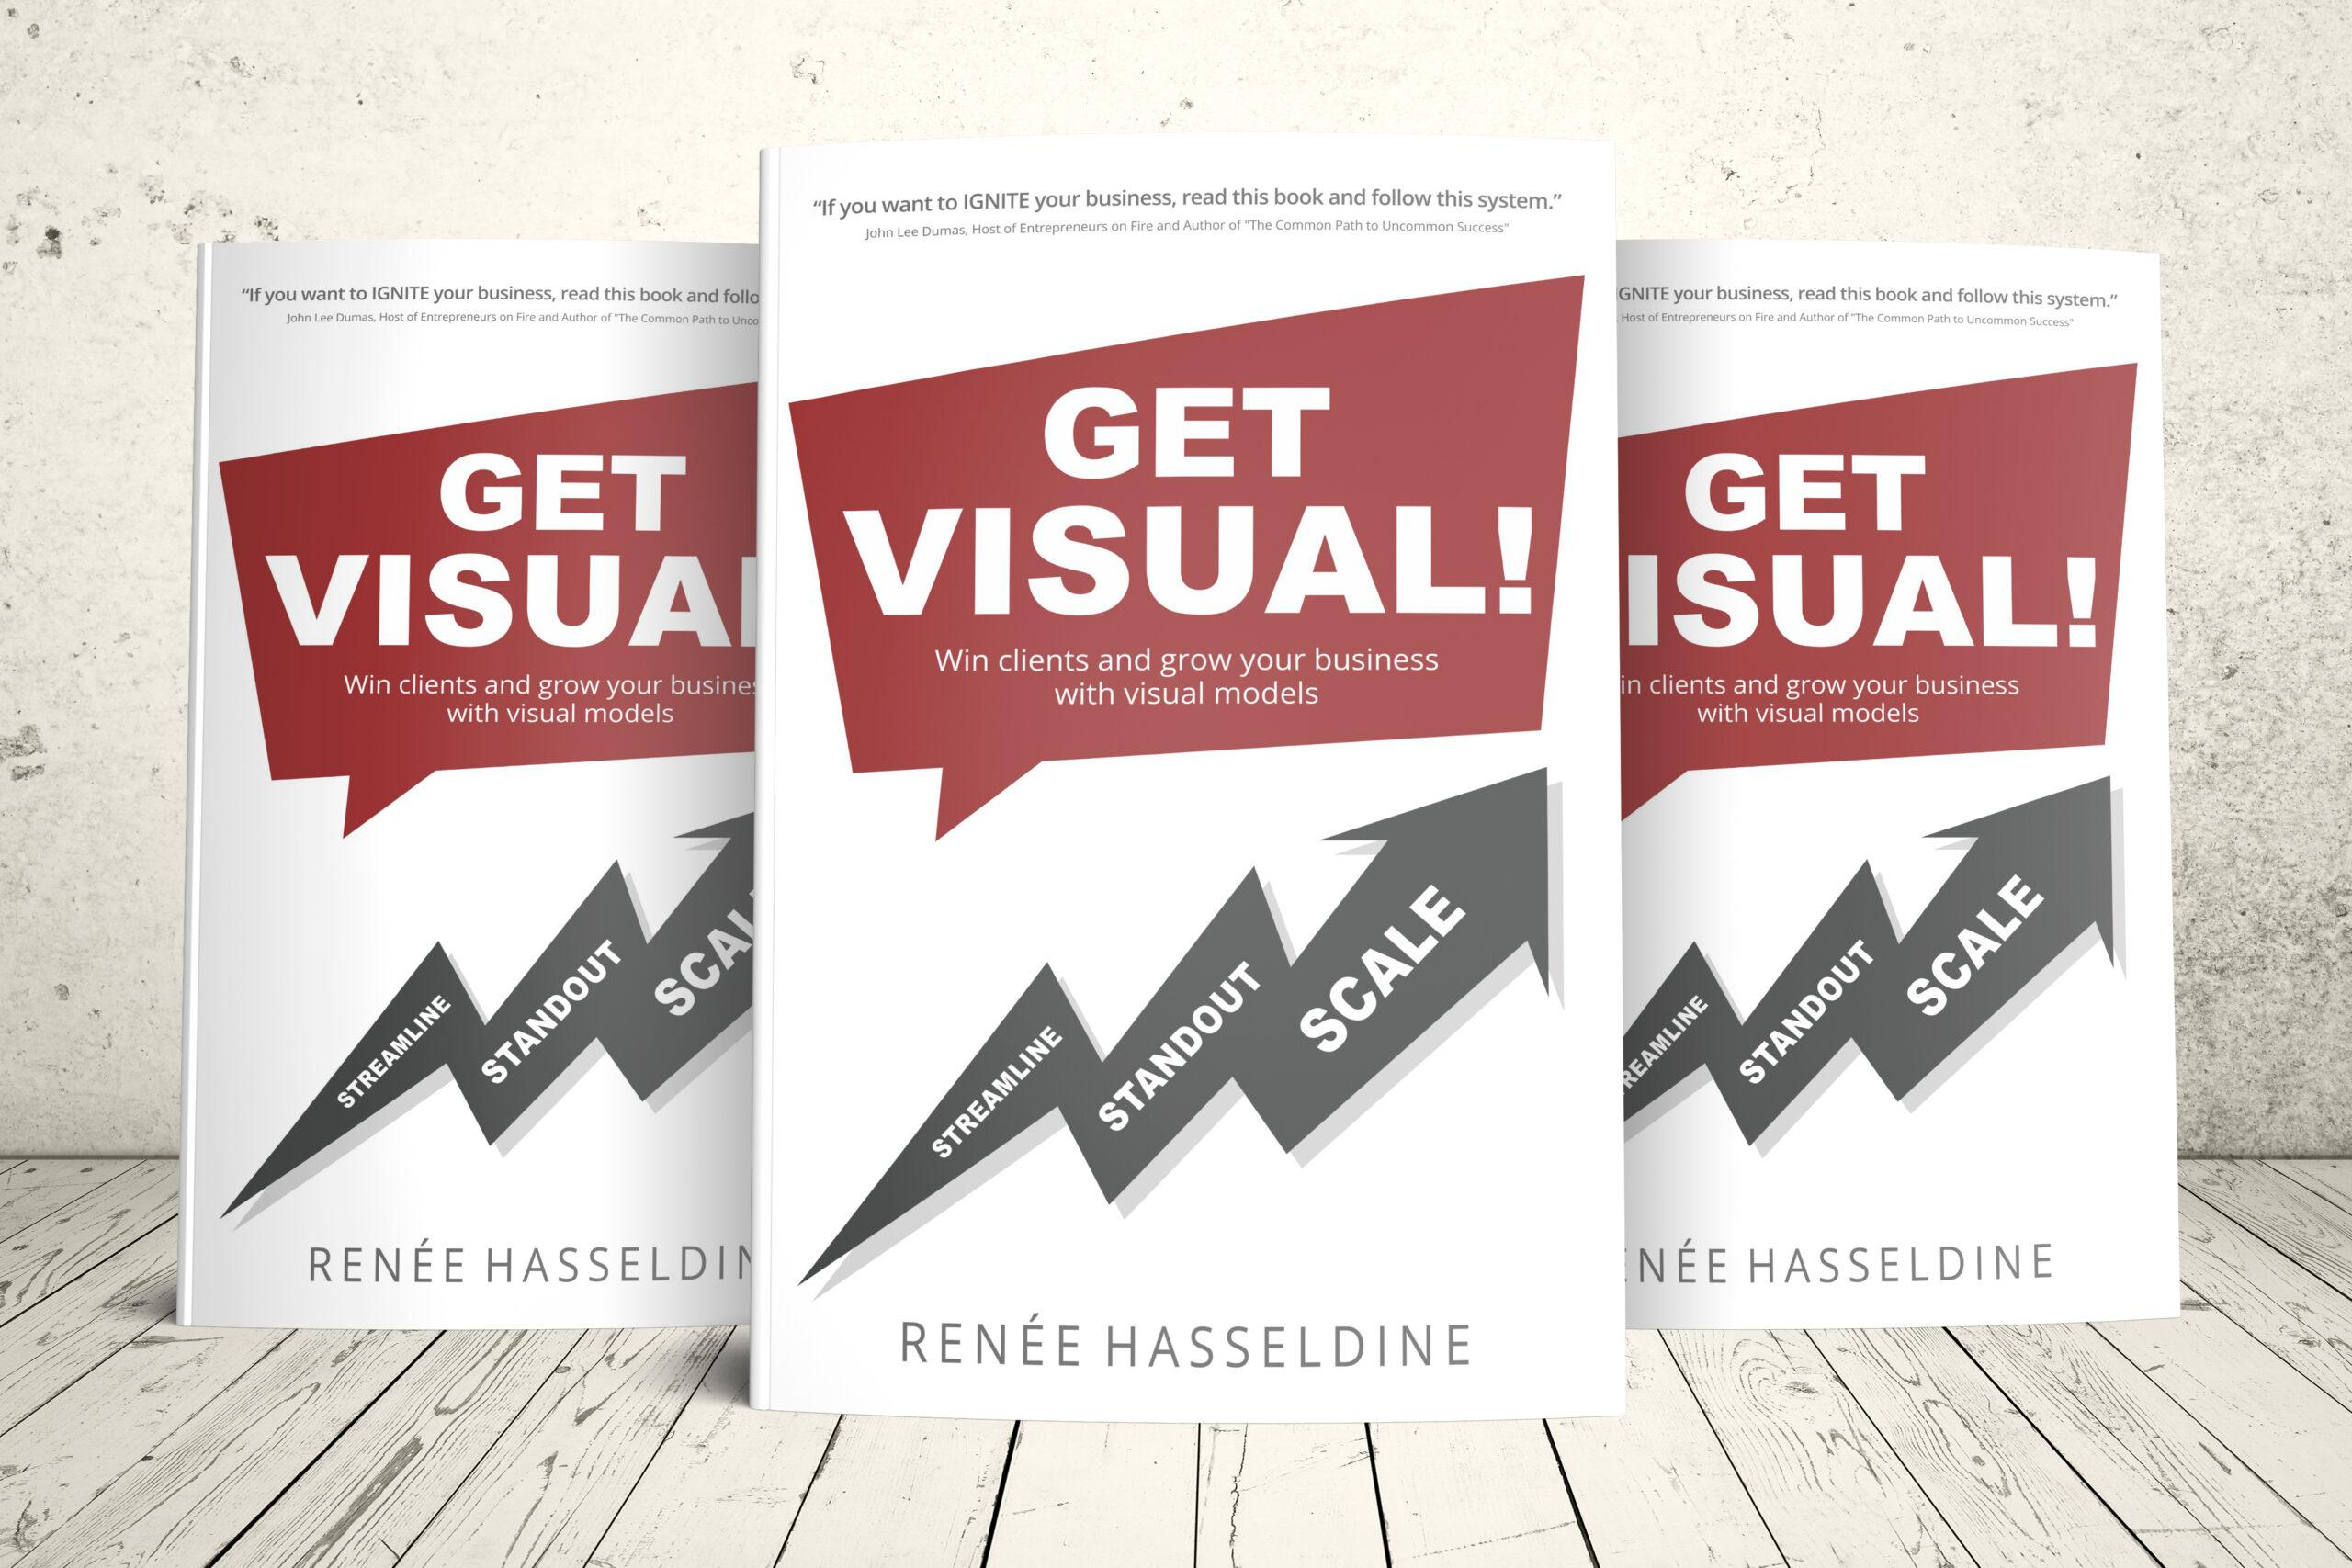 Three copies of GET VISUAL! All lined up on white floorboards, standing up.